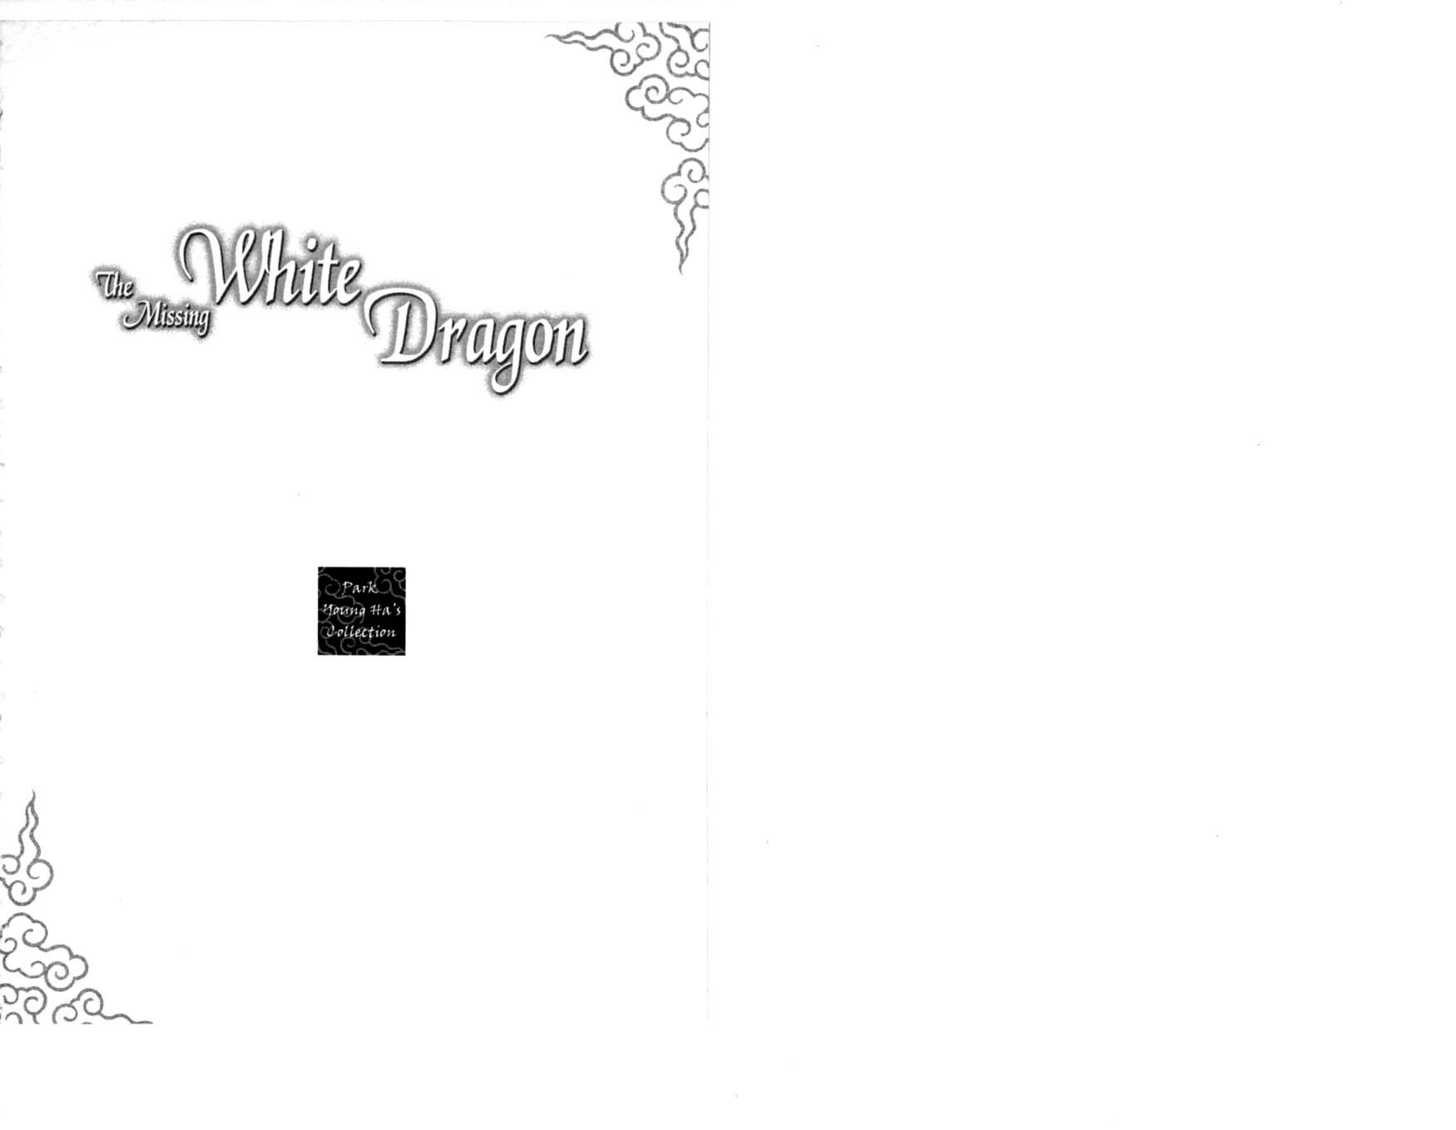 The Missing White Dragon 0 Page 2